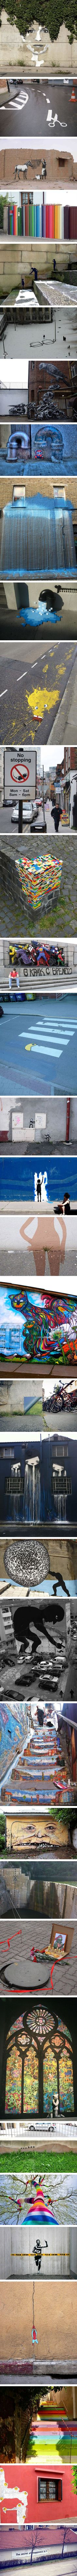 70 beautiful examples of street art